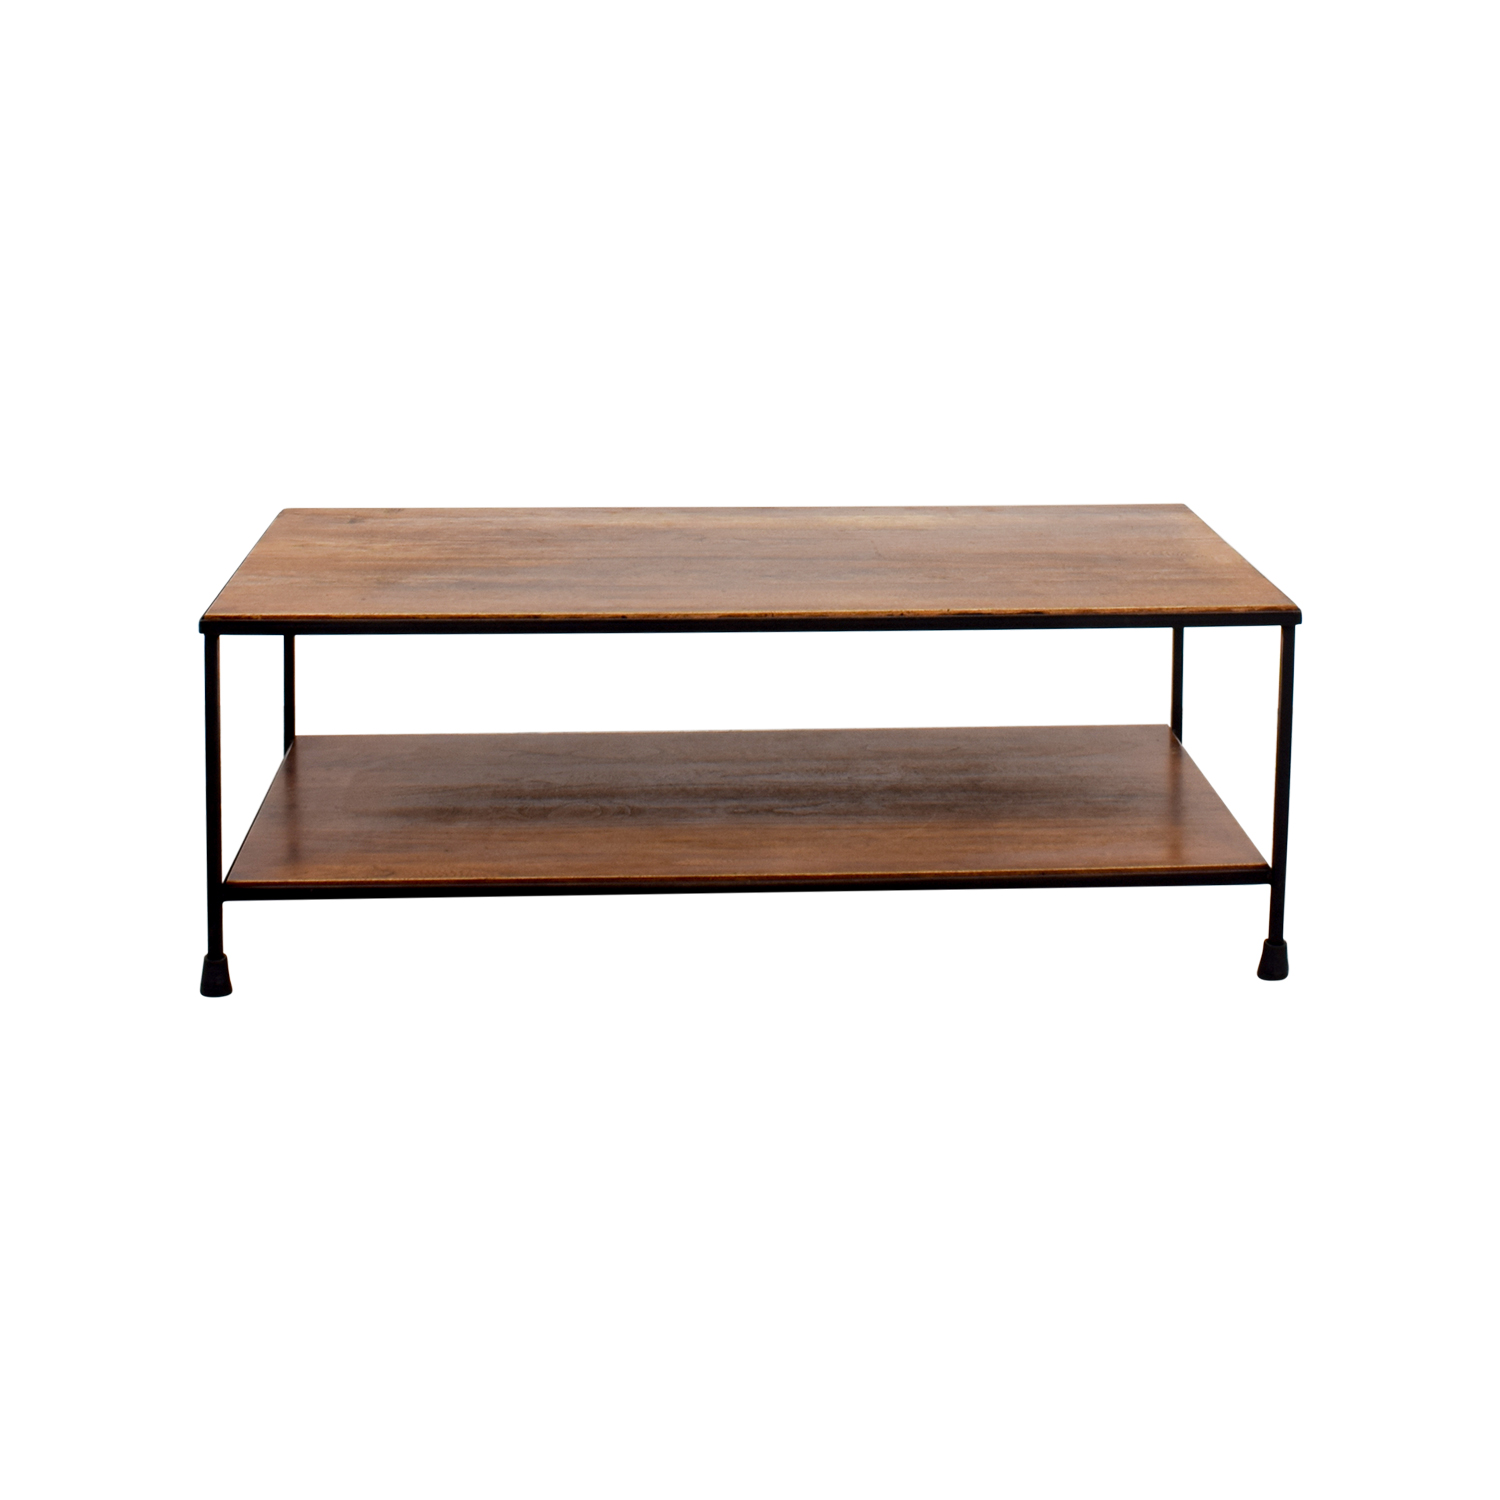 Pottery Barn Pottery Barn Wood and Metal Coffee Table nj